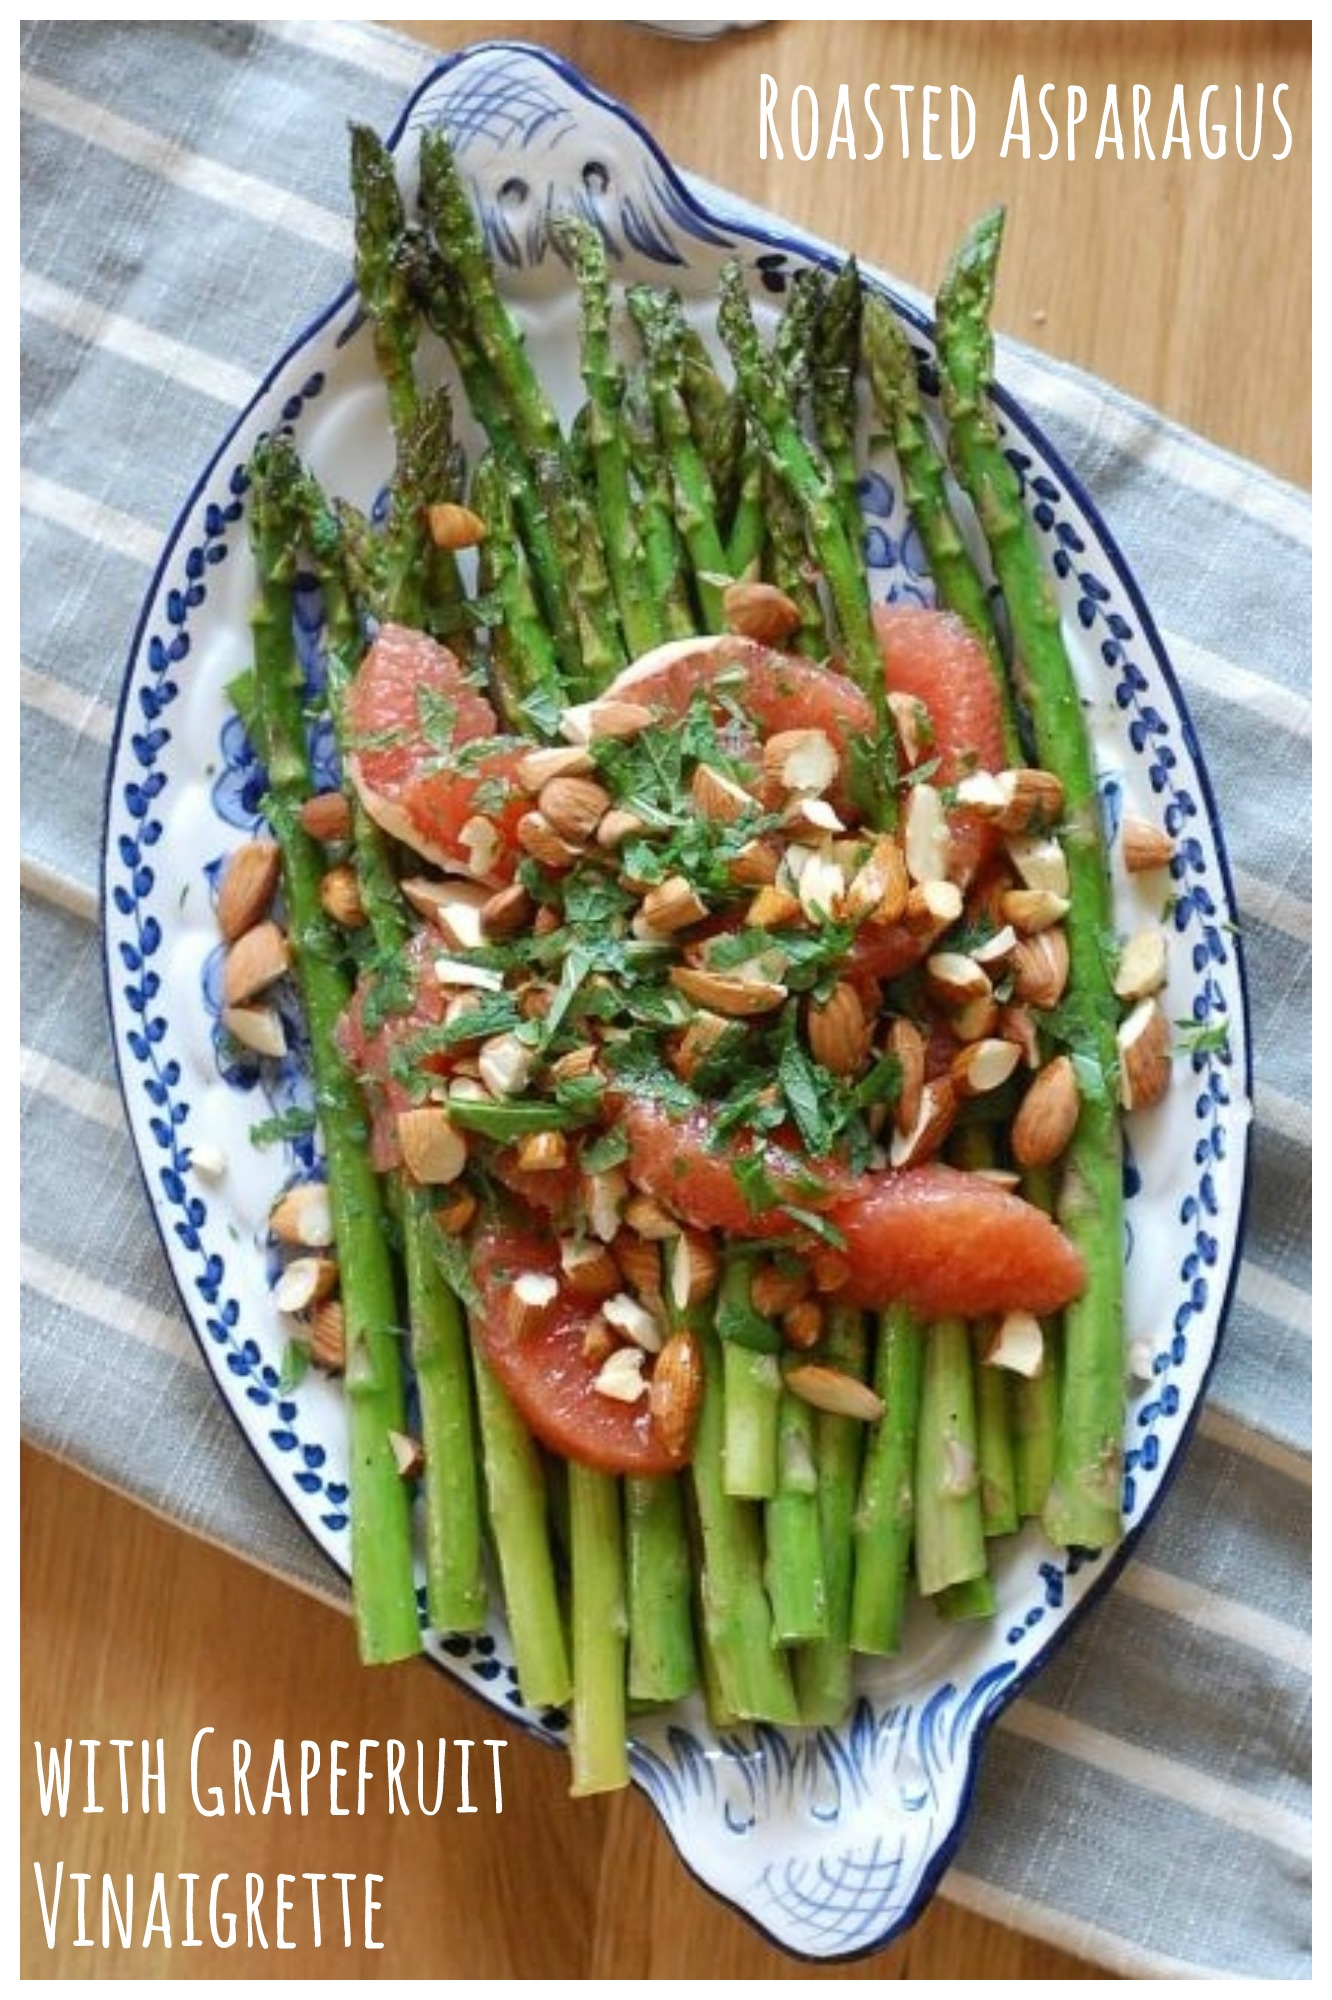 This simple roasted asparagus salad is bursting with citrus flavor!